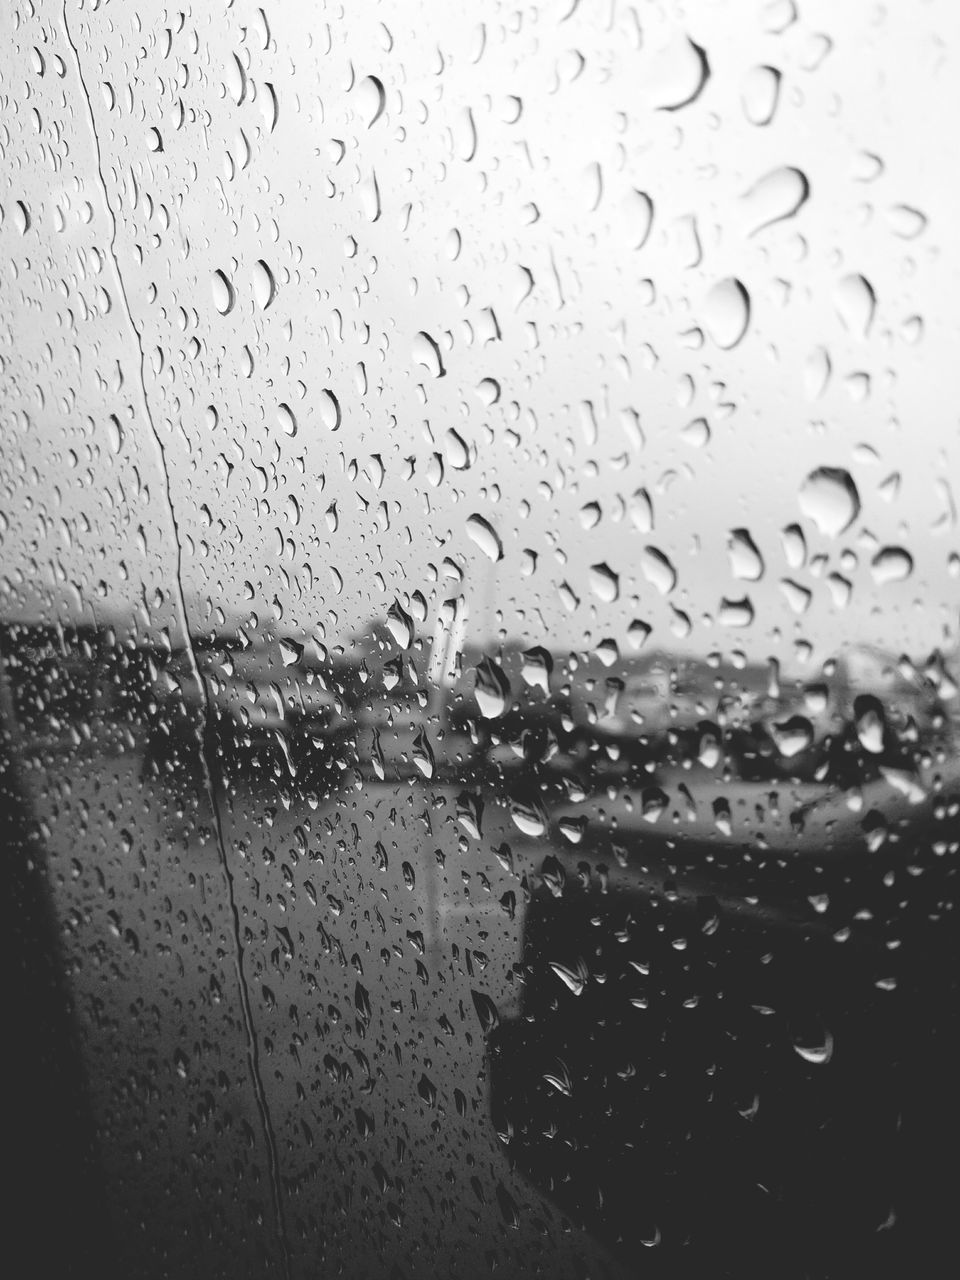 drop, transparent, glass - material, water, wet, window, rain, indoors, raindrop, full frame, backgrounds, weather, no people, rainy season, close-up, day, nature, sky, freshness